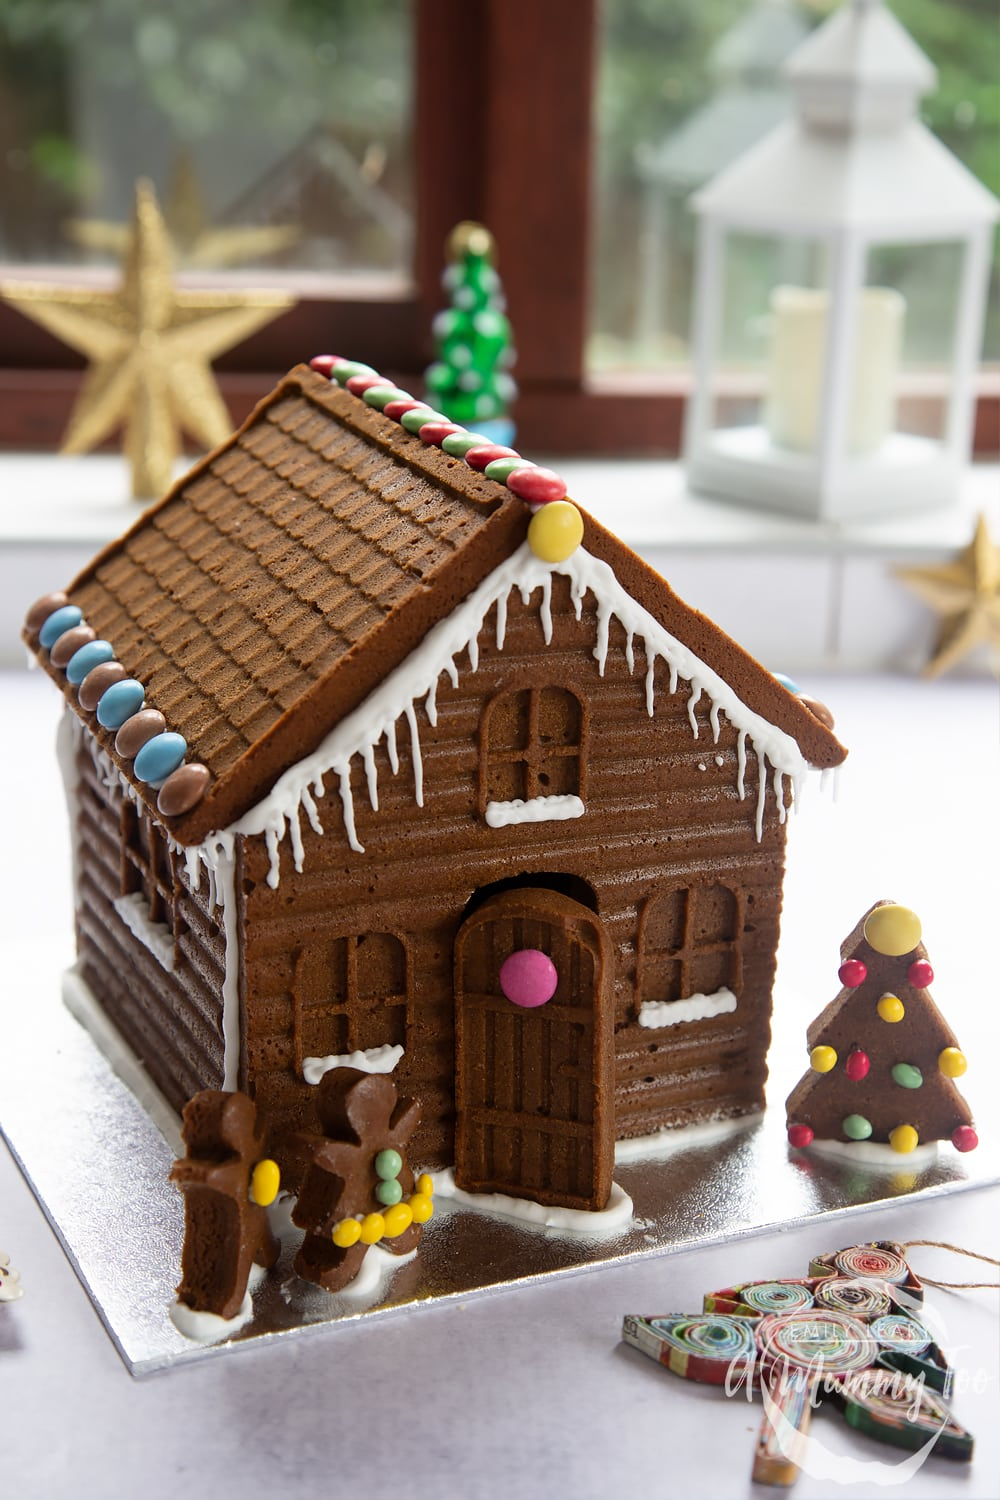 A detailed gingerbread house on a silver board. The house is decorated with smarties and mini chocolate beans, as well as royal icing to resemble snow and icicles.